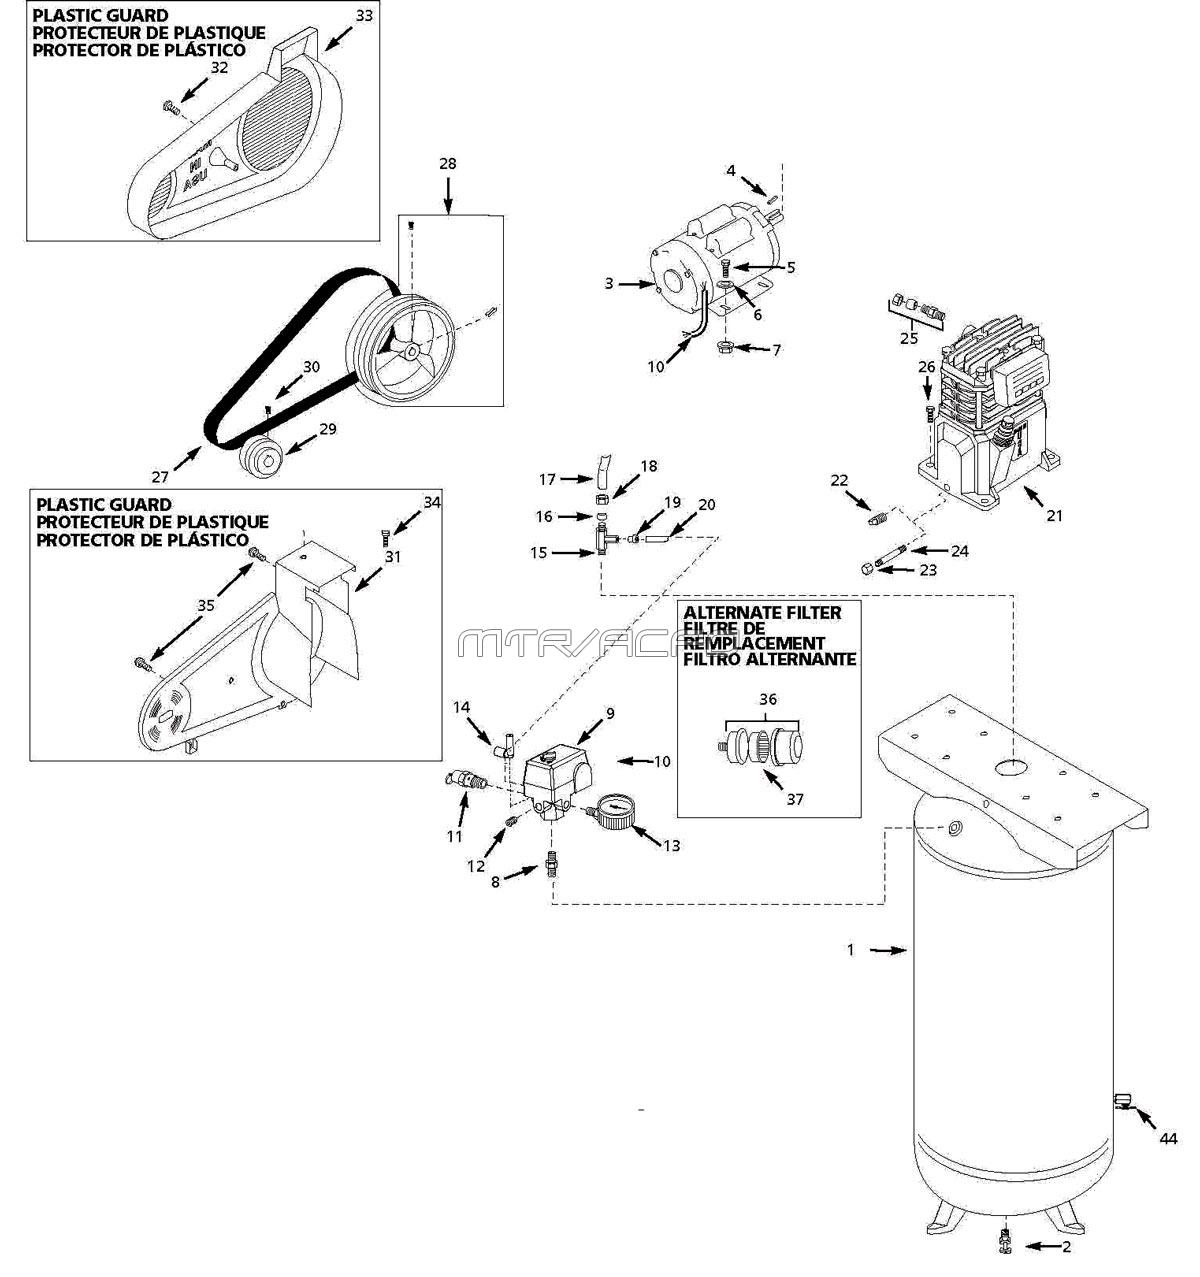 HUSKY_VT631403AJ_parts husky vt631403aj air compressor parts husky air compressor wiring diagram at edmiracle.co